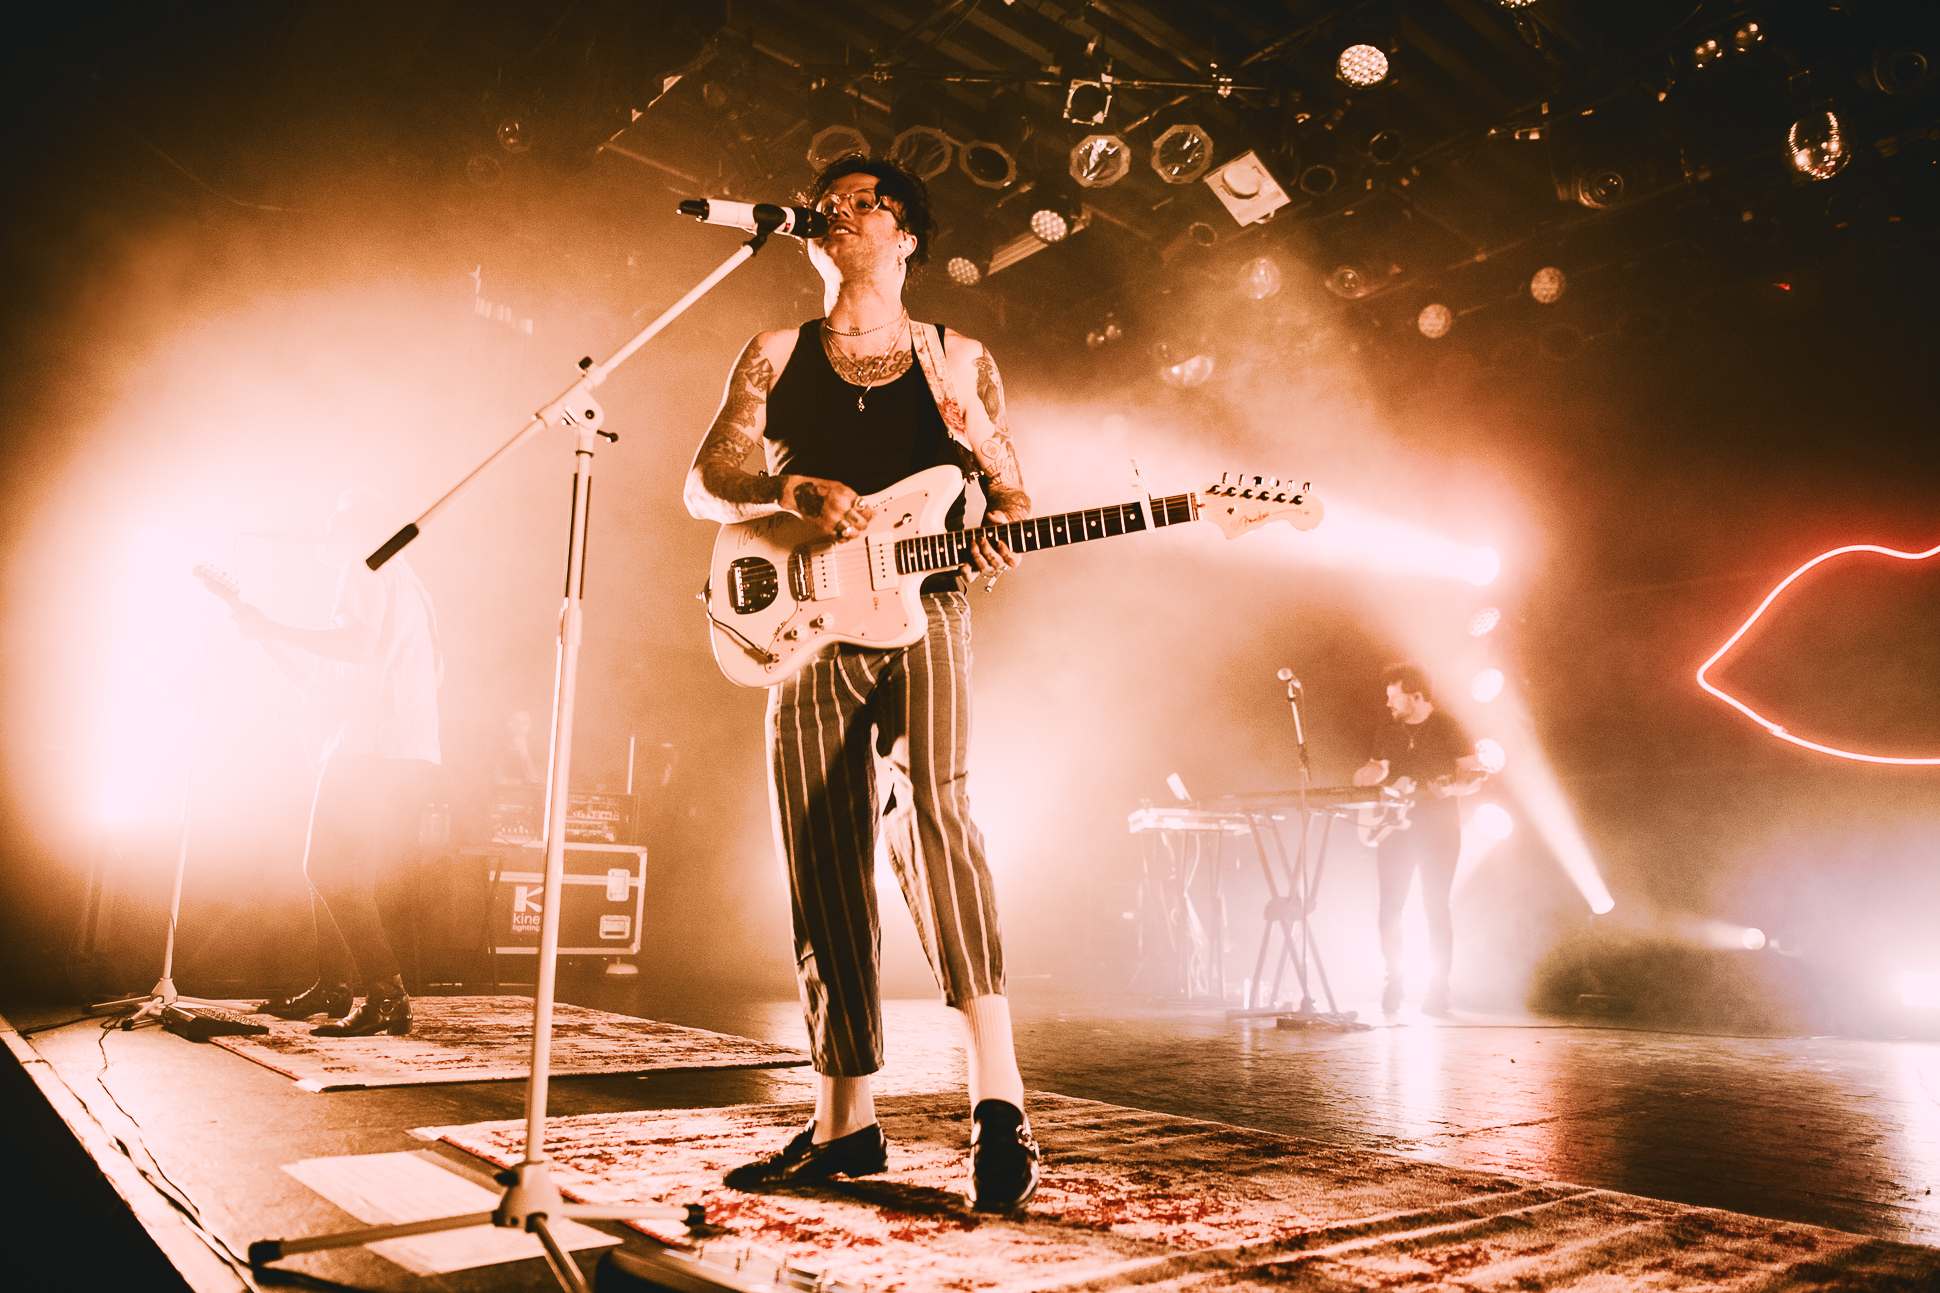 lovelytheband-Commodore-19-04-2019-Vancouver-4009.jpg